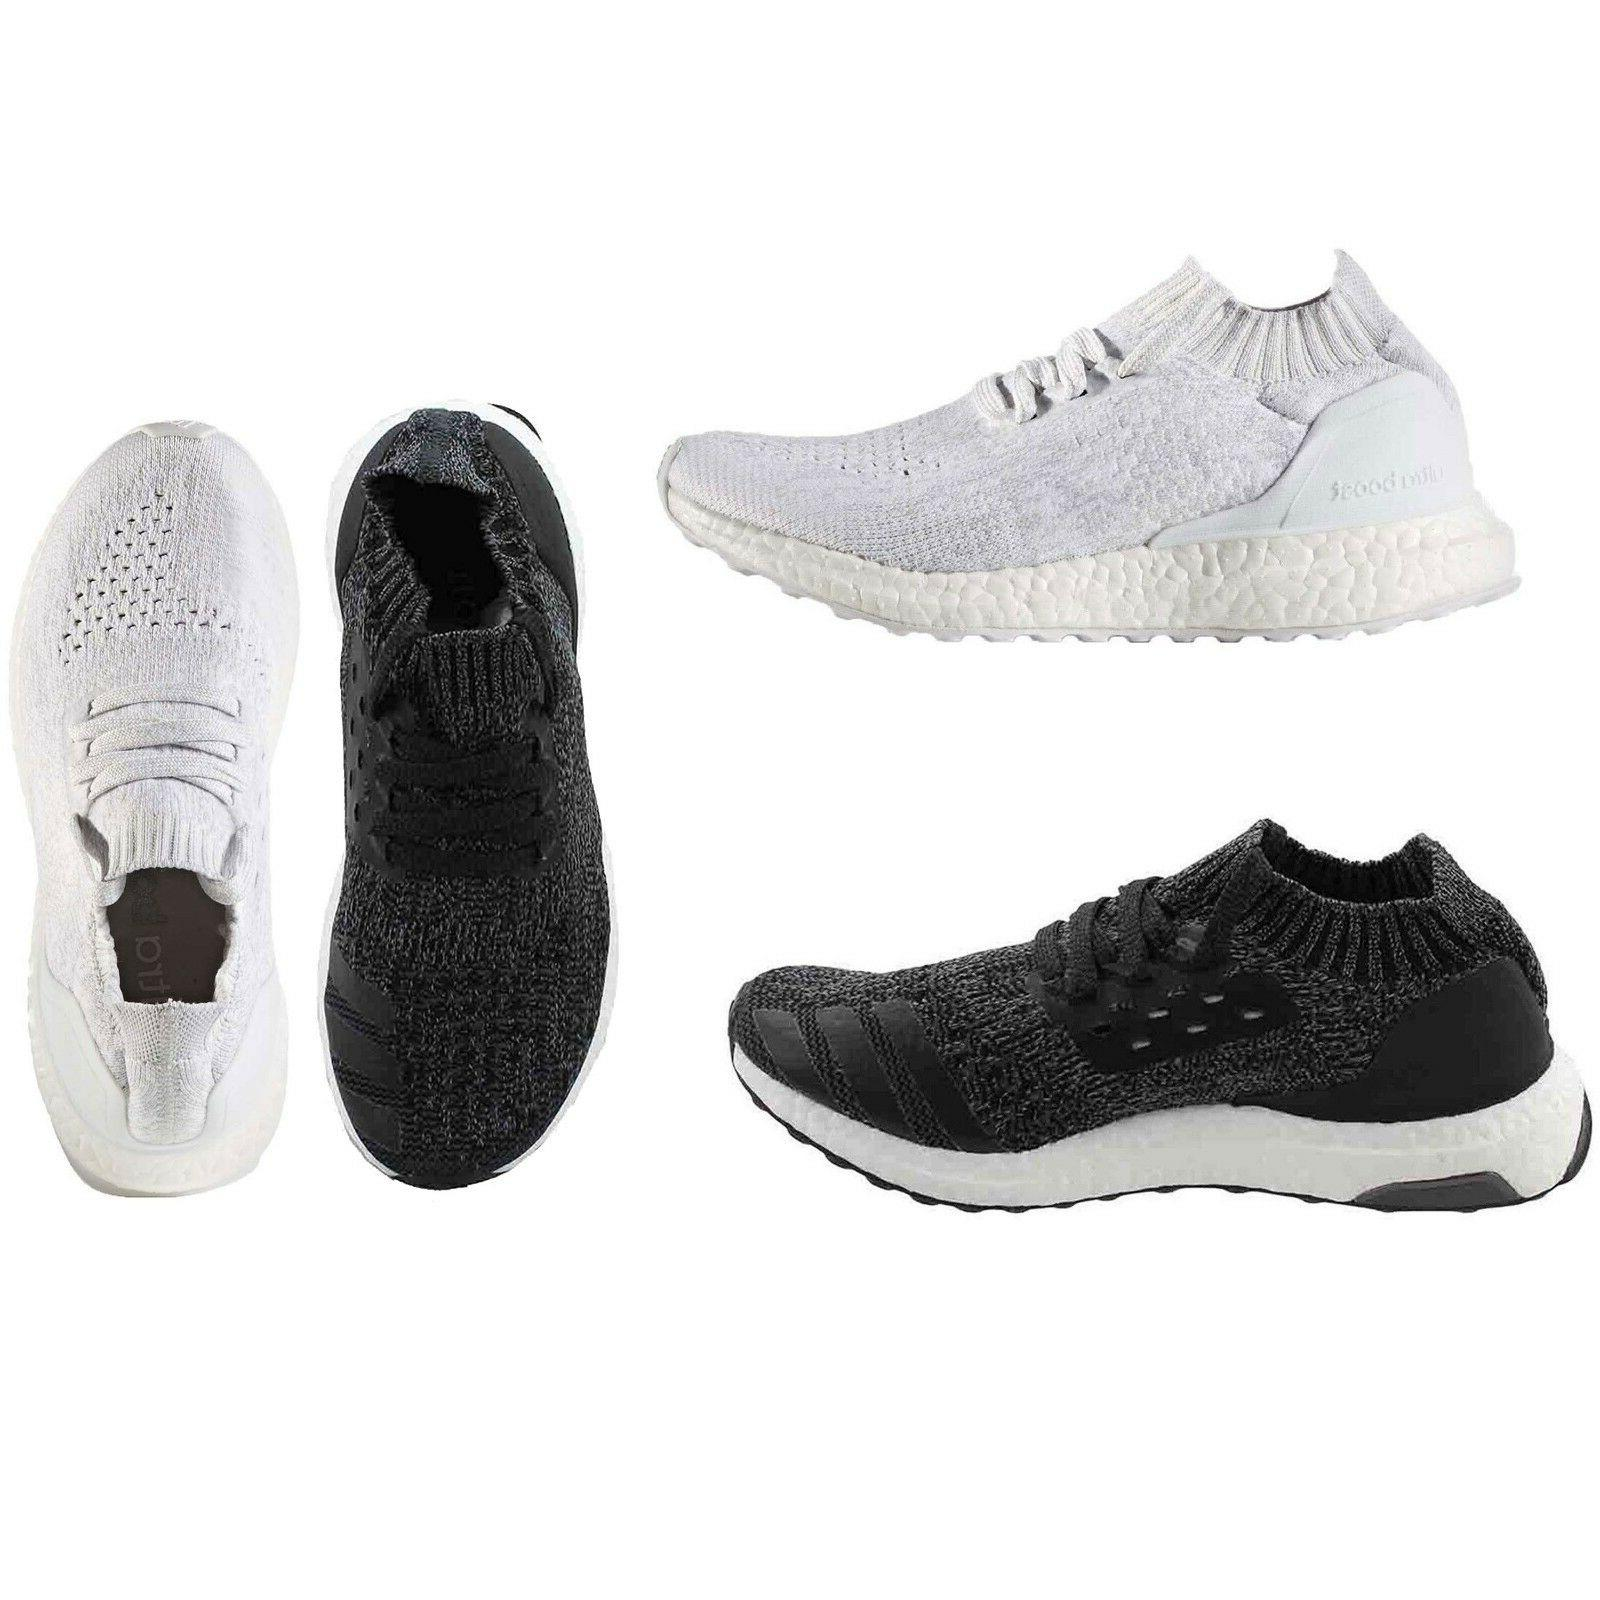 Adidas Boy's Big Kids Athletic Shoes Ultraboost Uncaged Prim